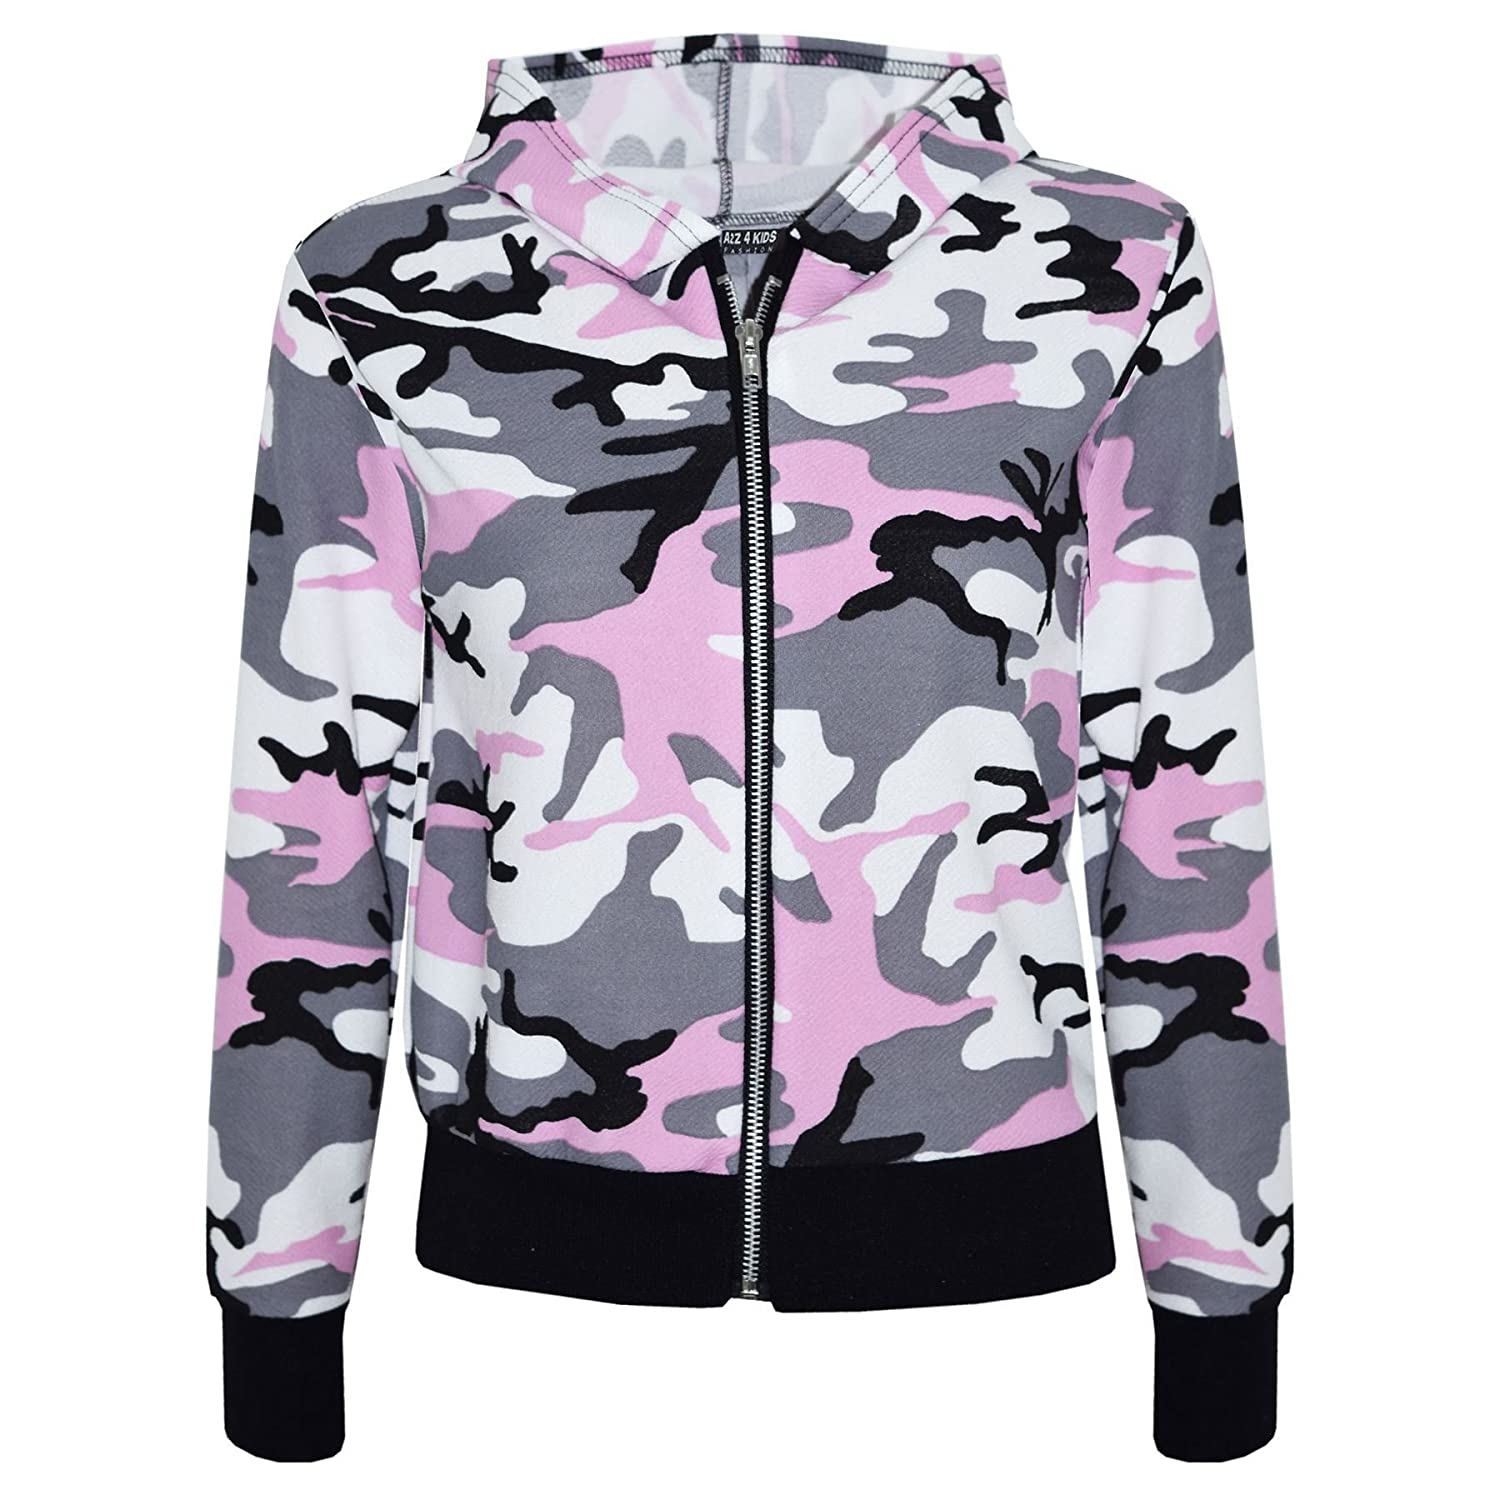 Kids Girls Jacket Designer Camouflage Print Baby Pink Hooded Jackets Coat 7-13 Y